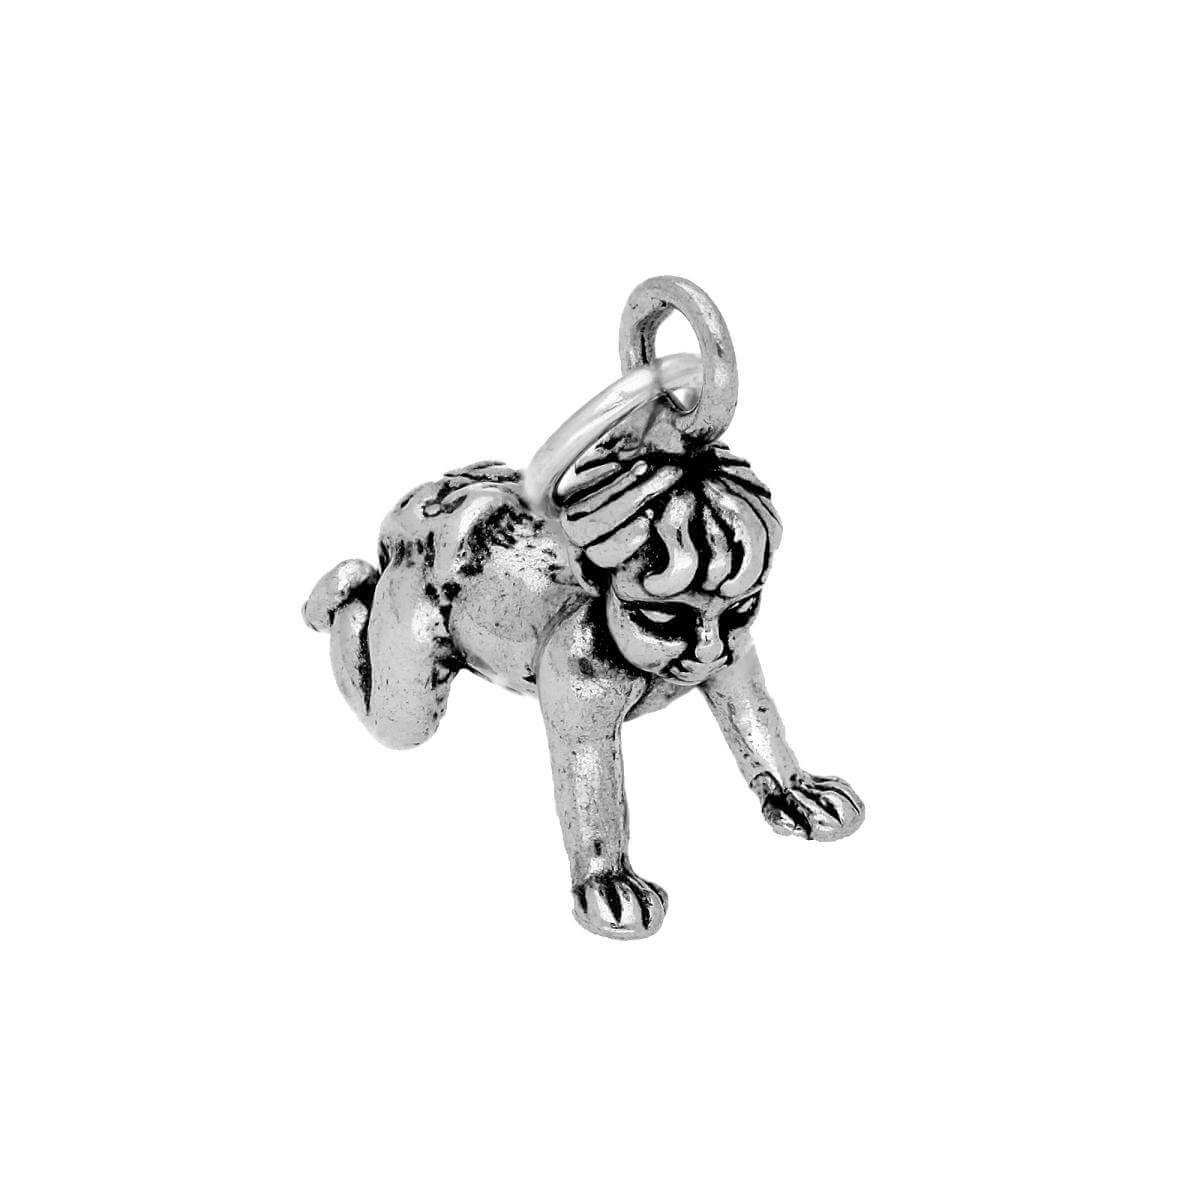 Sterling Silver Crawling Baby Charm